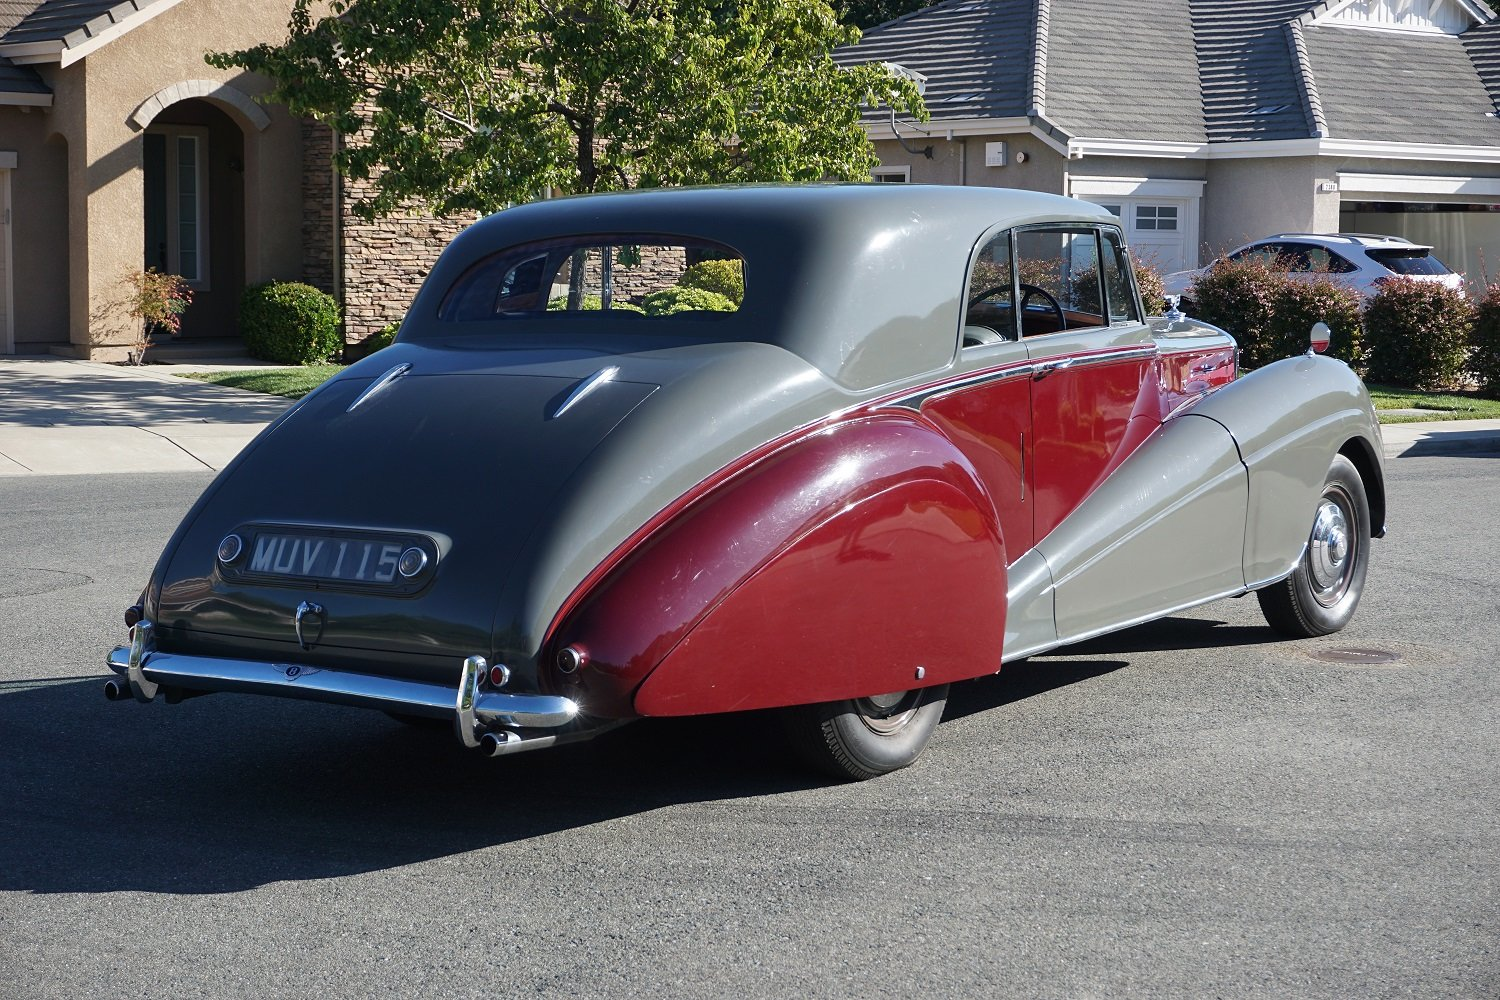 1951 Bentley Park Ward Coupe RHD #21863 For Sale (picture 2 of 6)